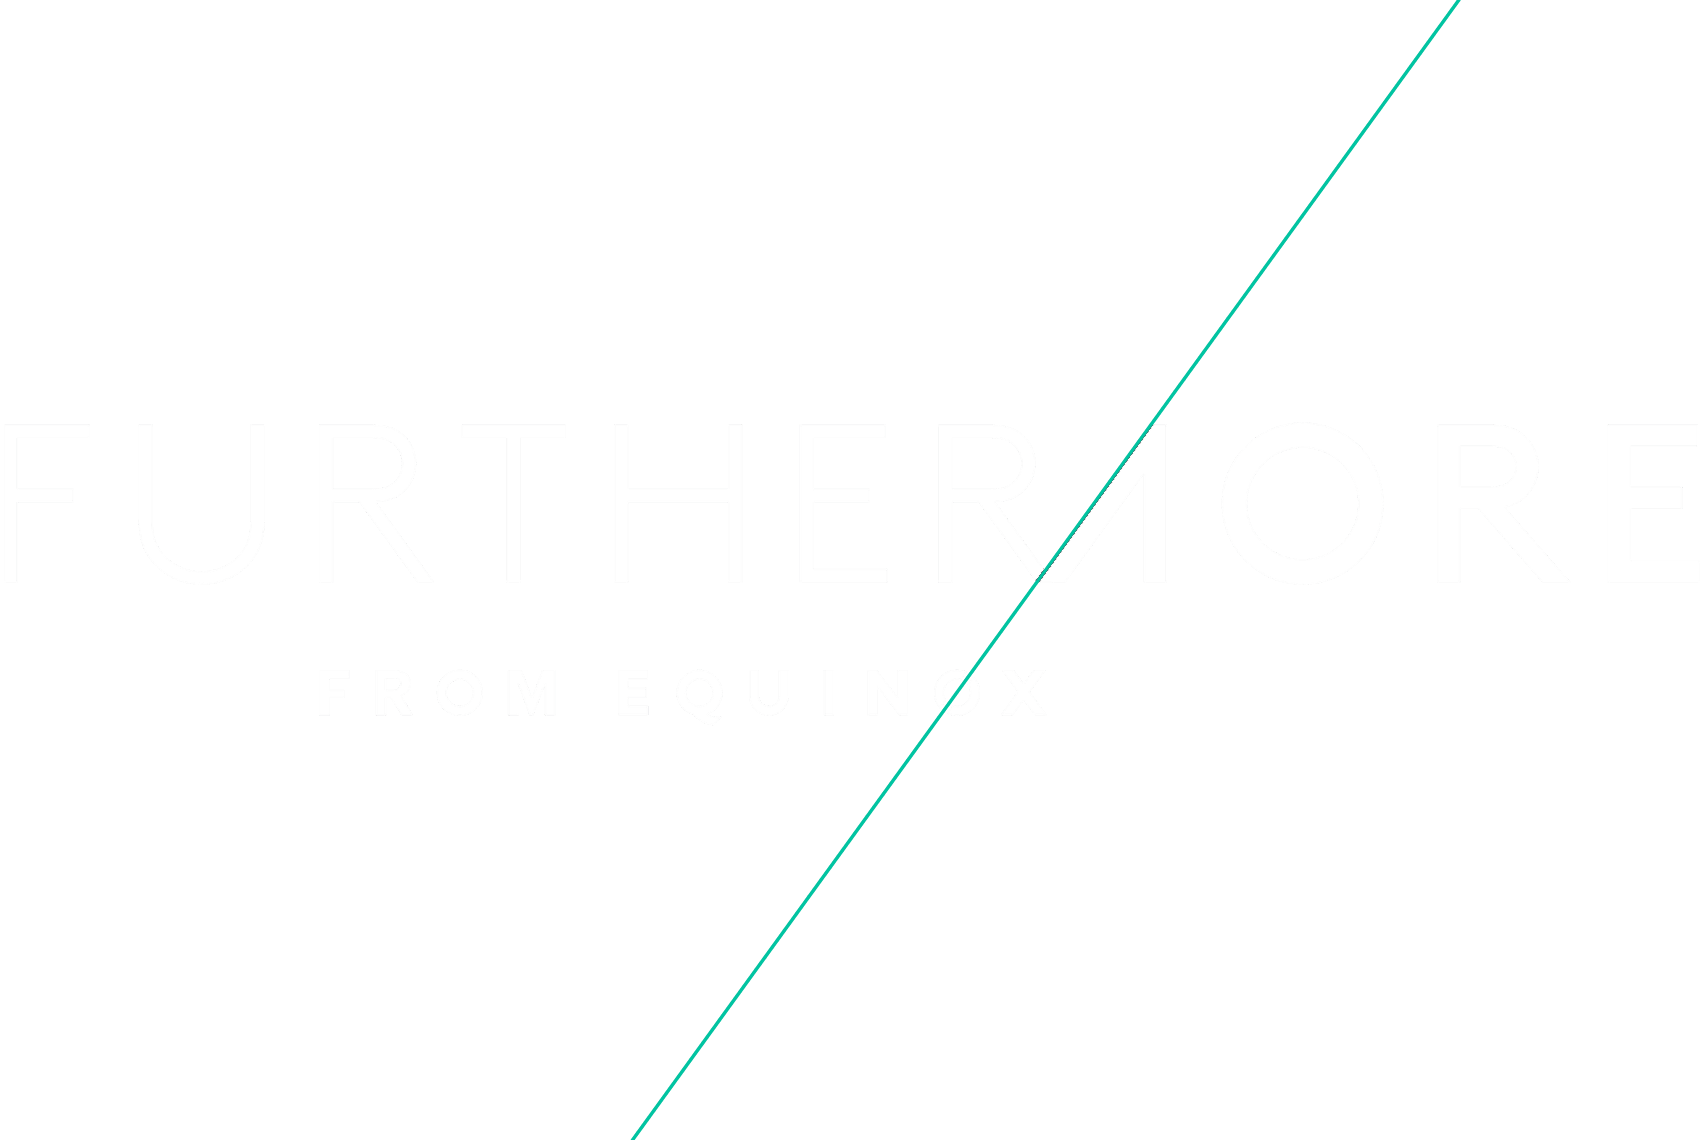 furthermore logo white.png